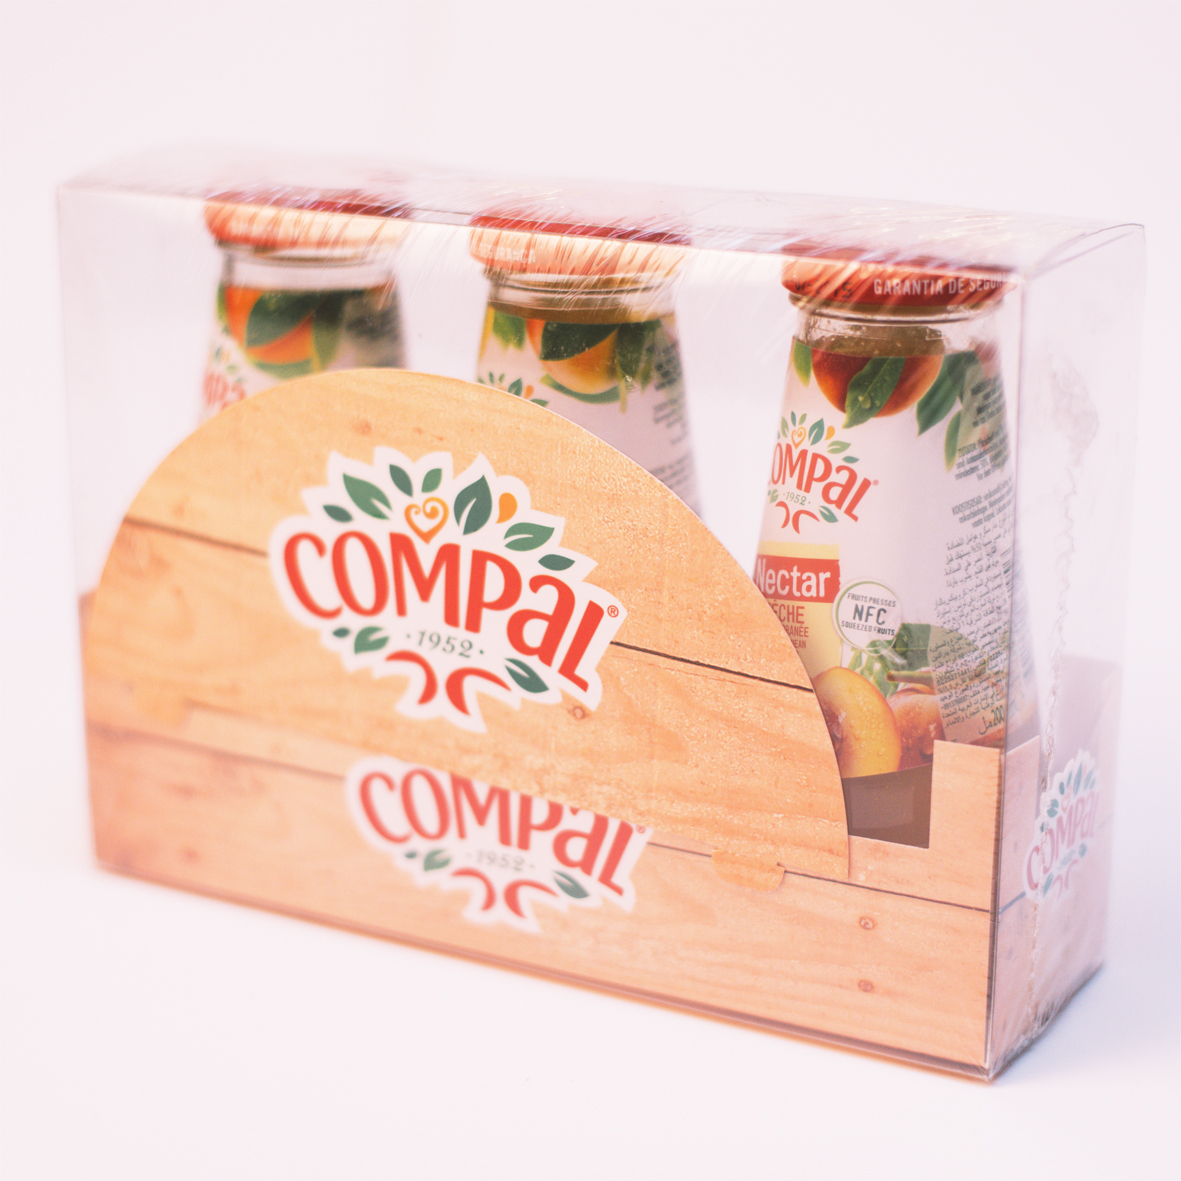 Packaging-Sumol-Compal